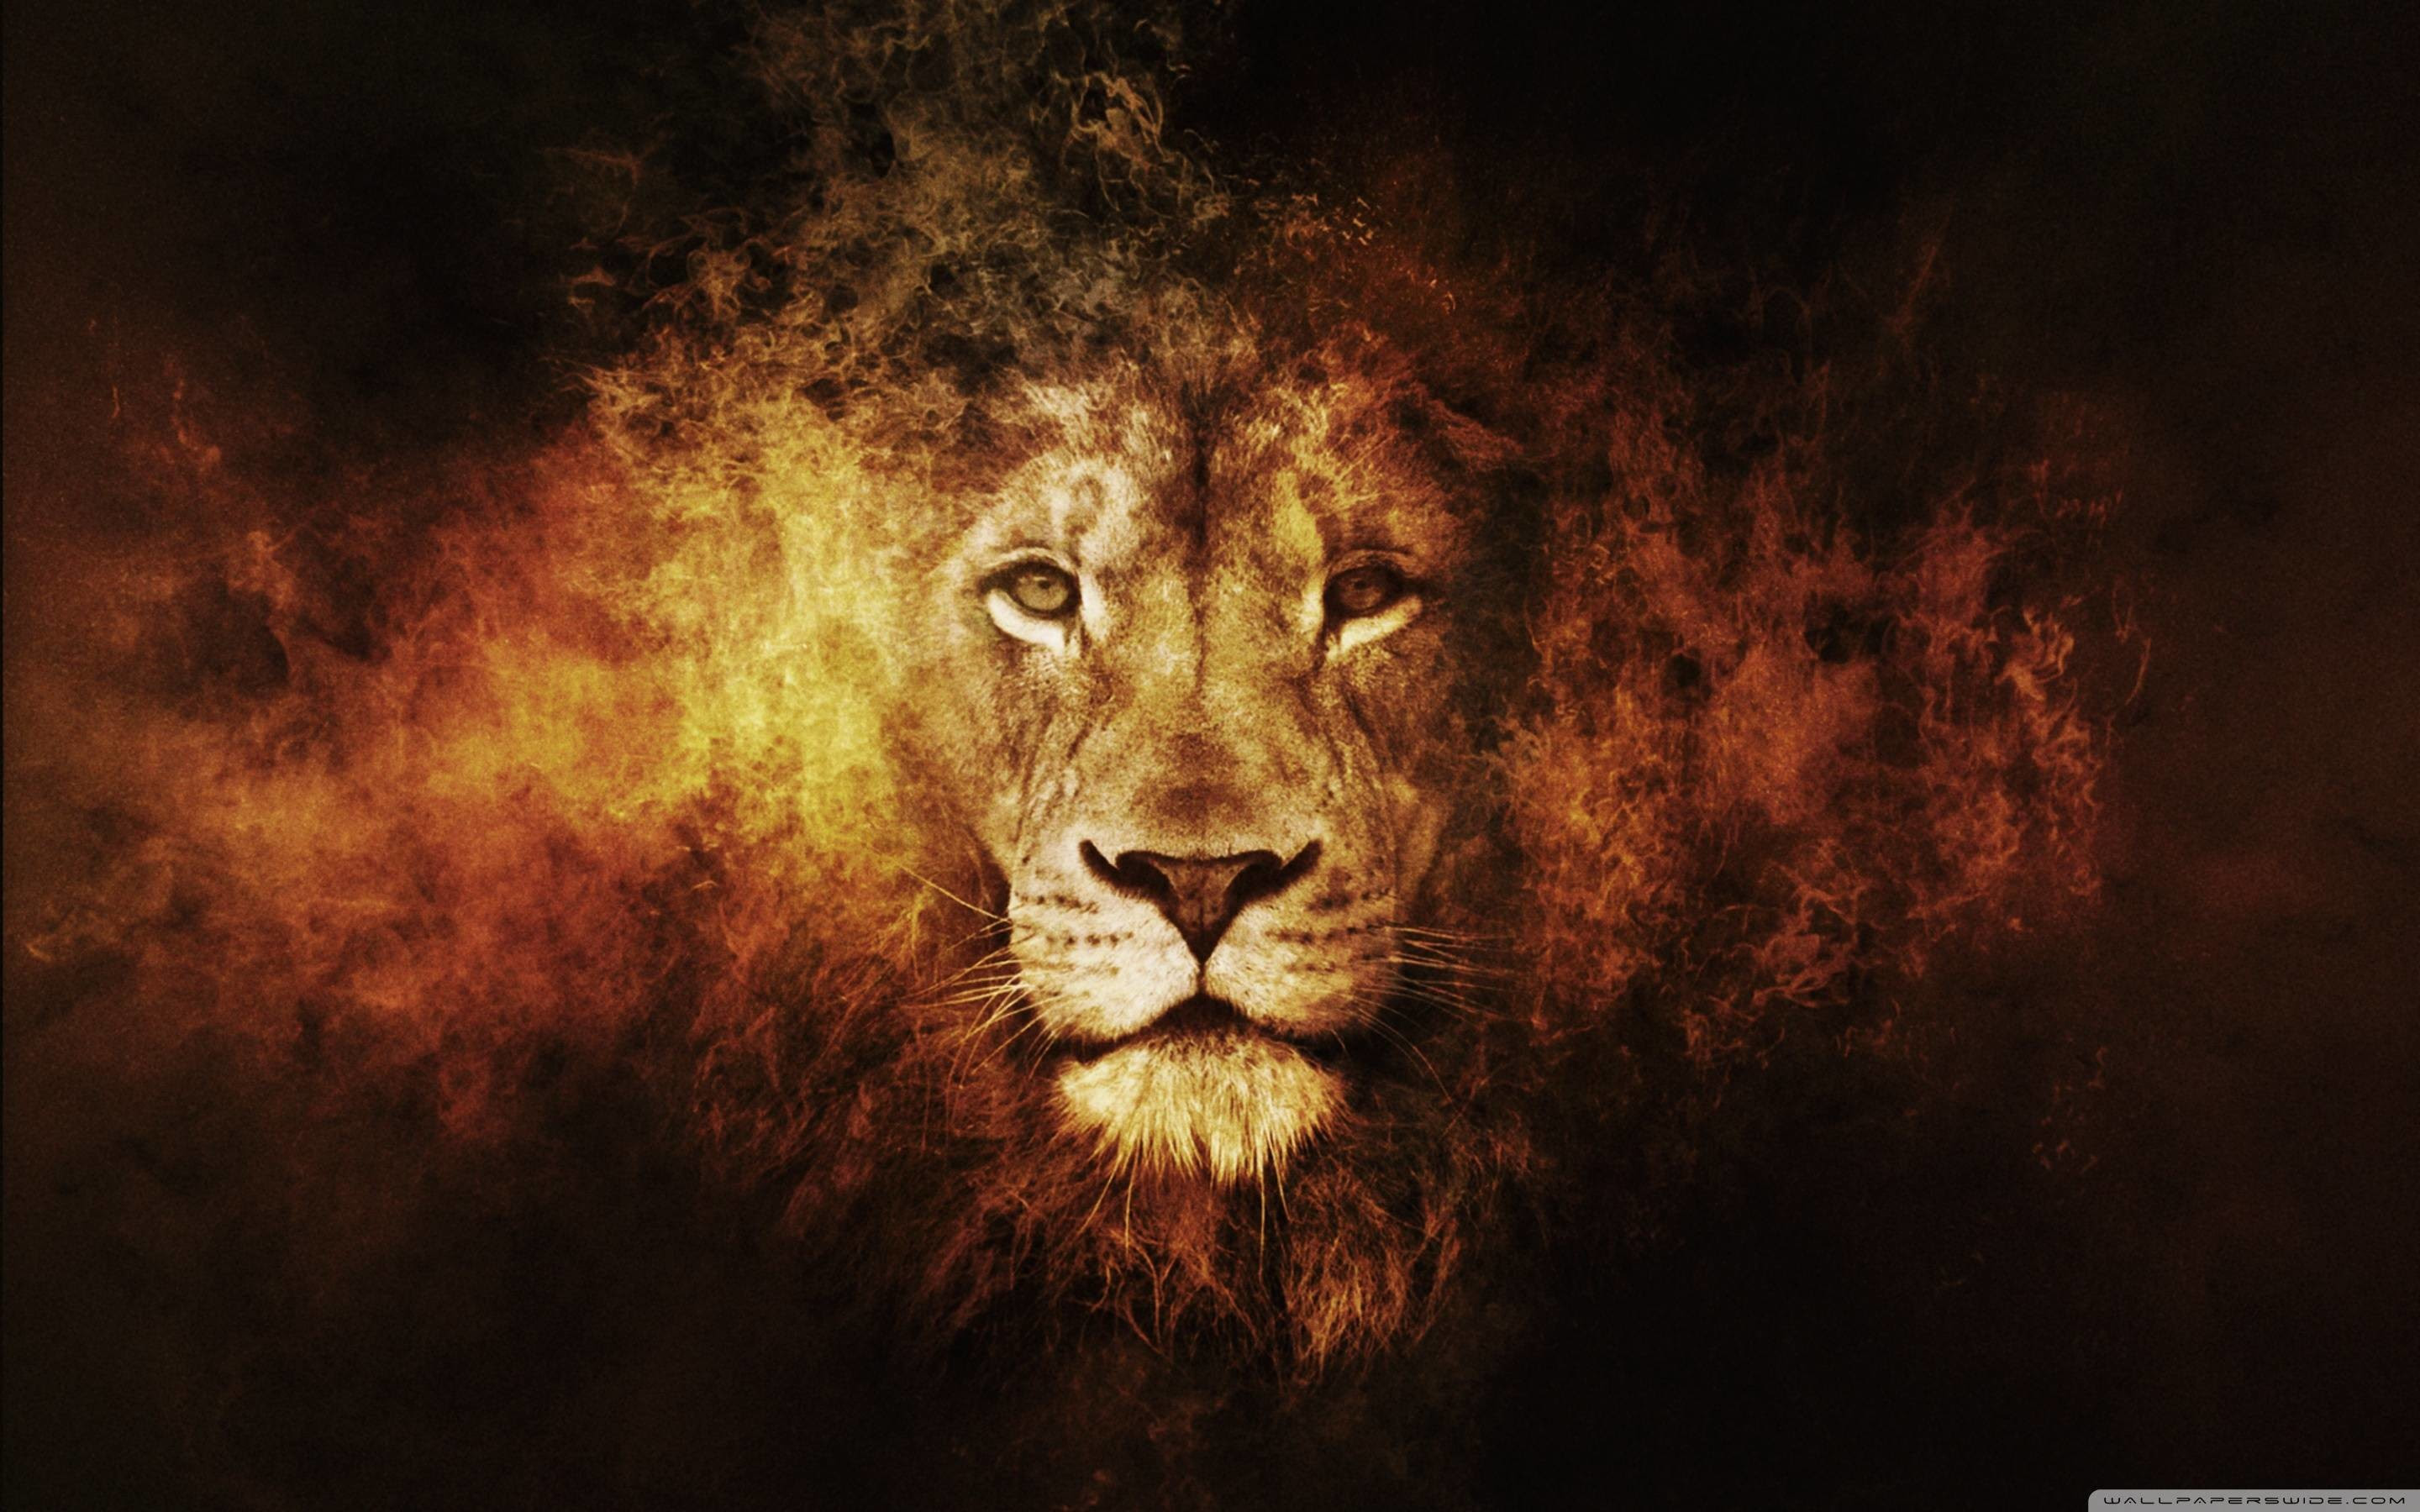 Angry Lion Wallpaper Hd Download